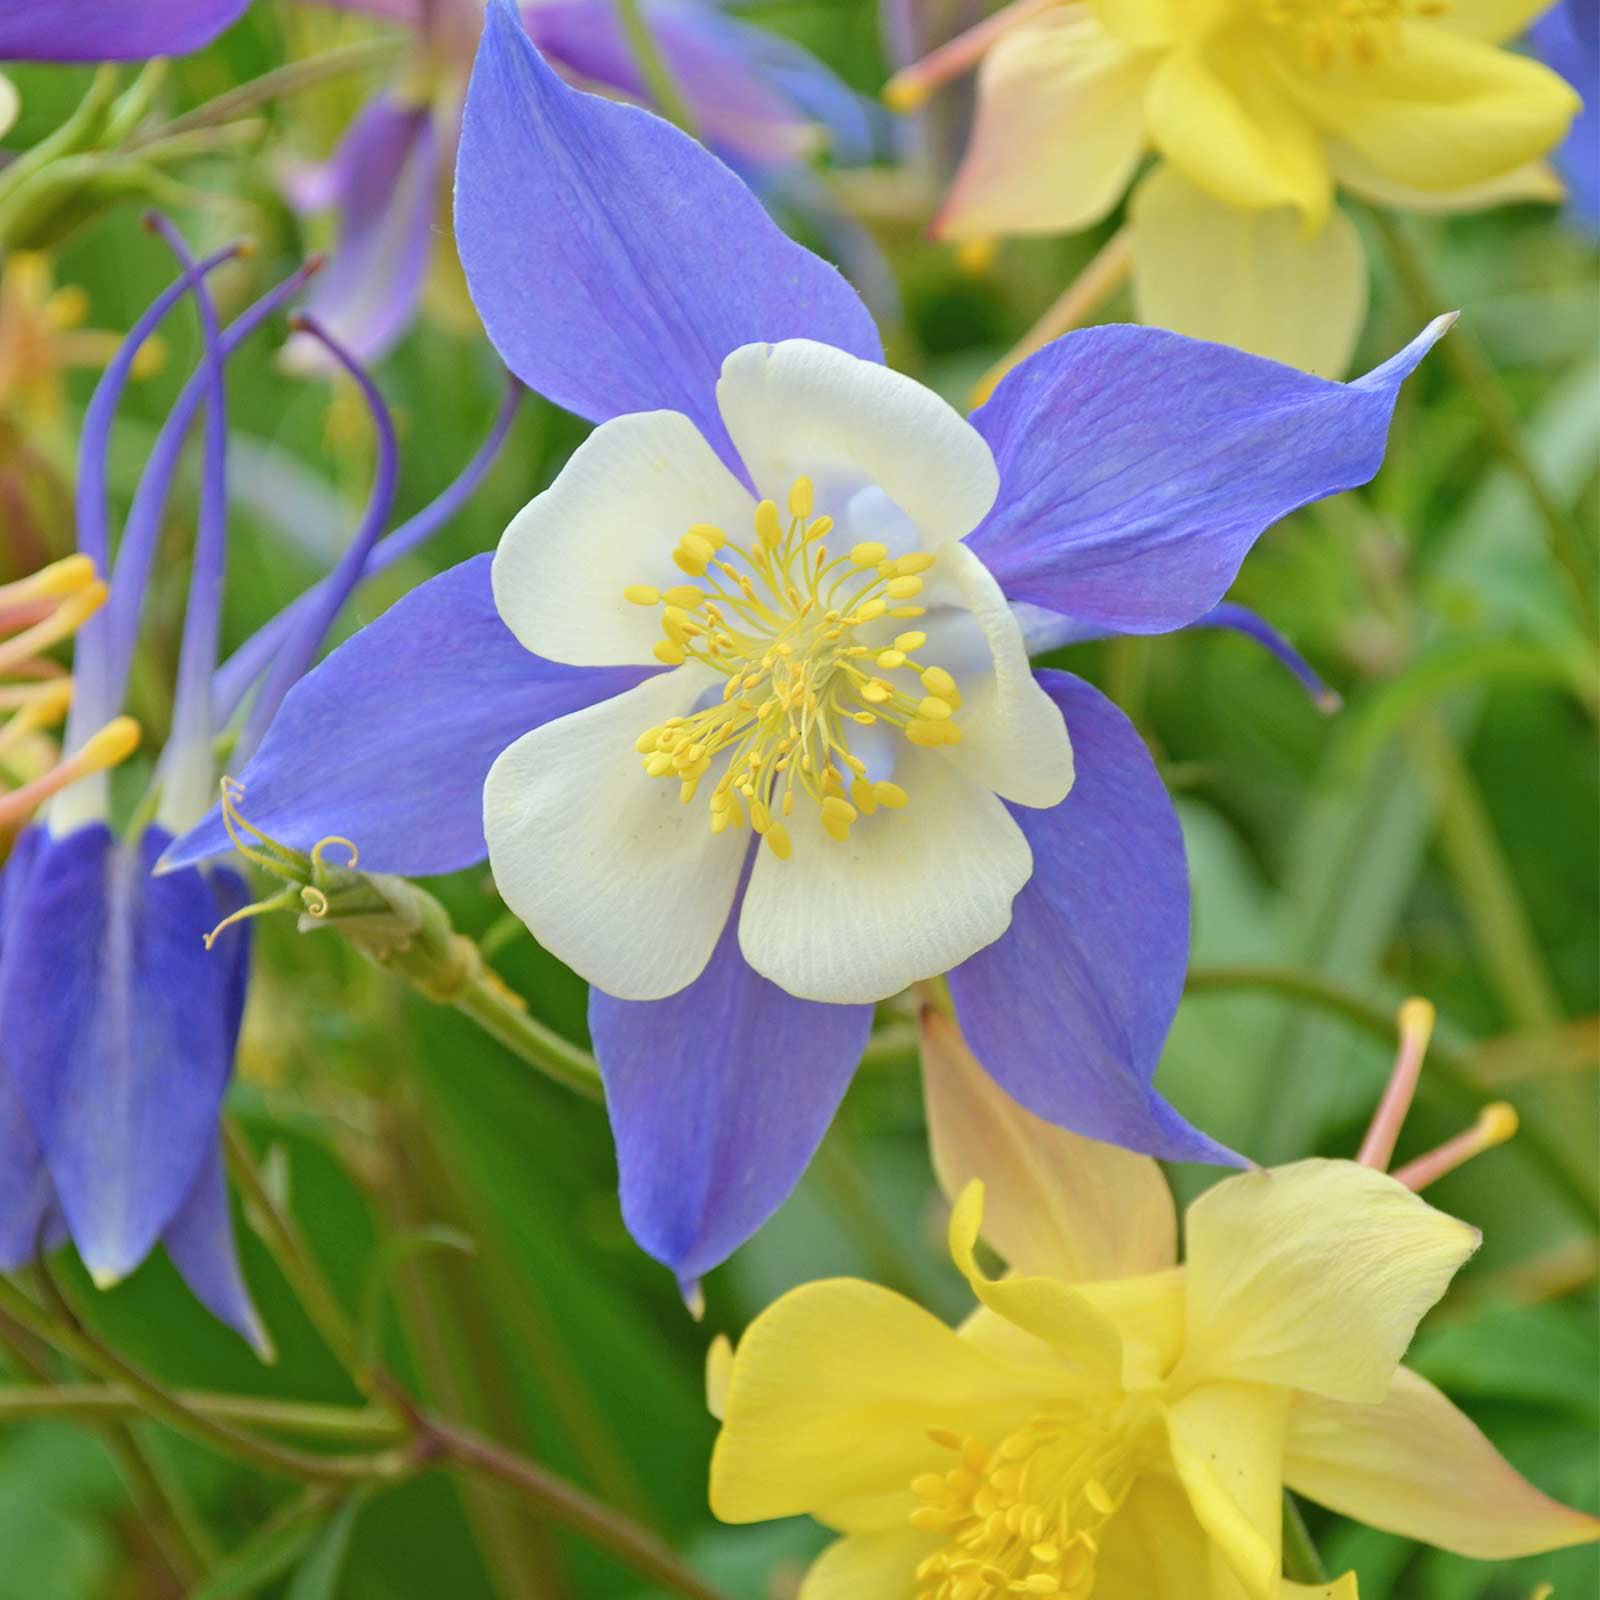 Mckansas giant columbine seeds 1 oz bright color mix perennial mckansas giant columbine seeds 1 oz bright color mix perennial flower garden seeds aquilegia x hybrida walmart izmirmasajfo